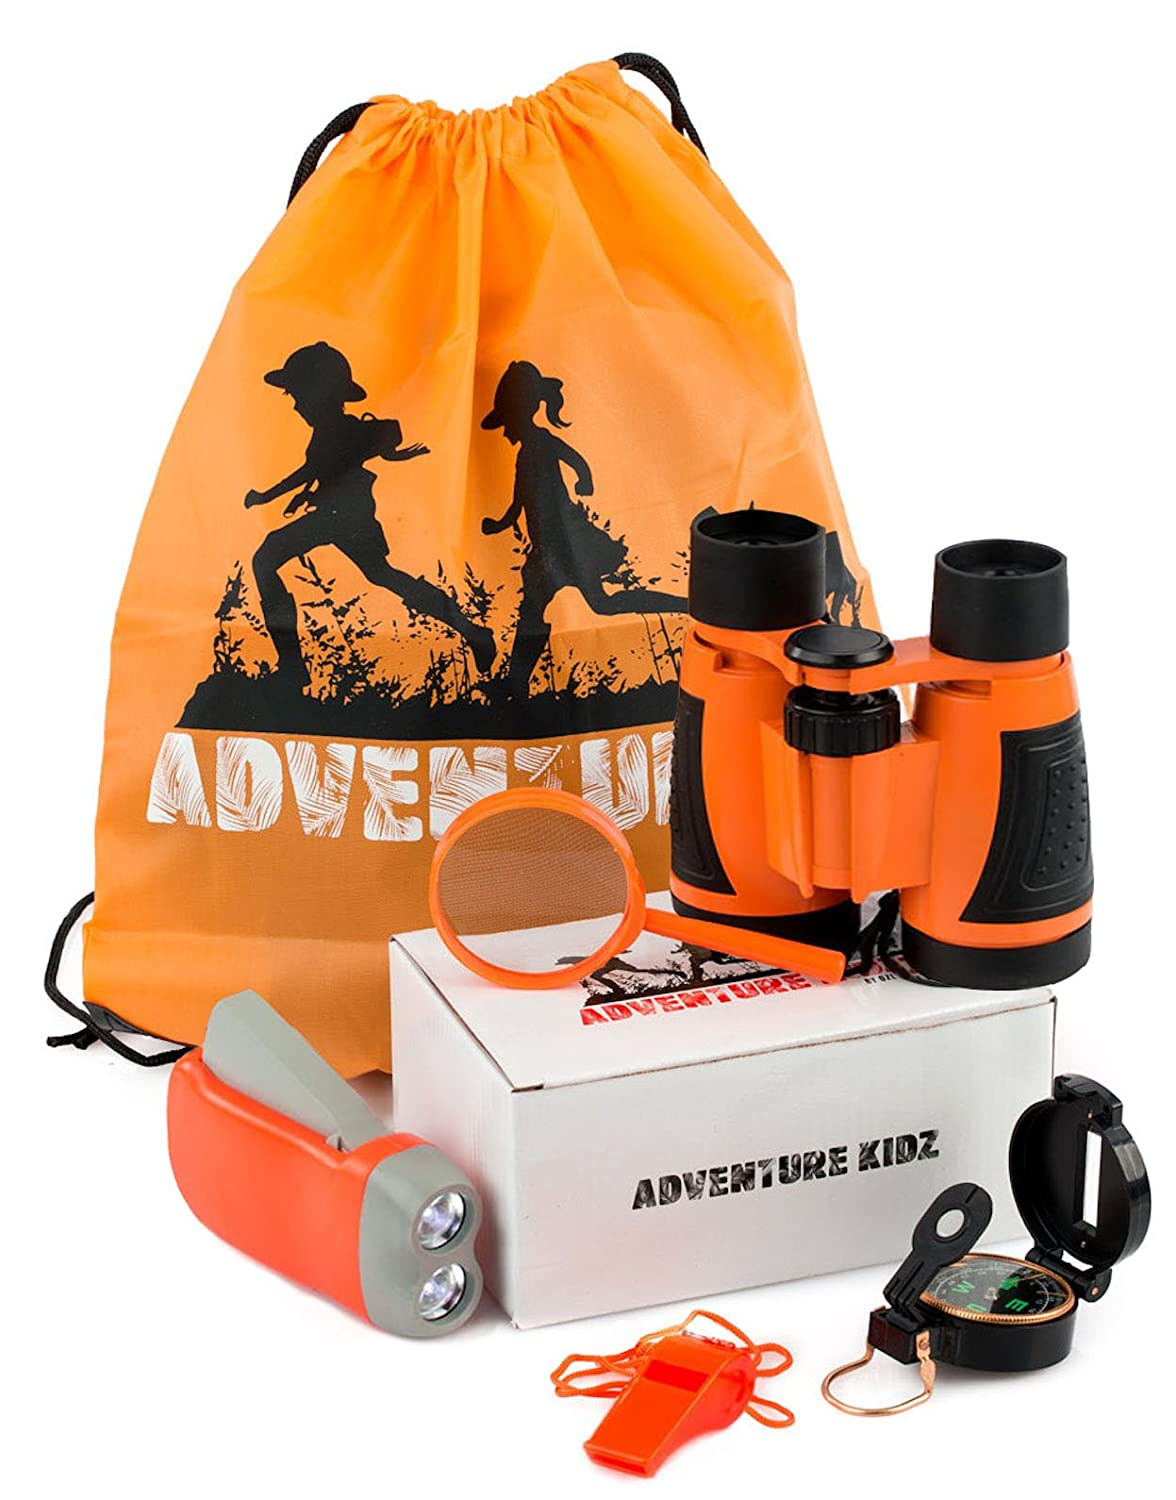 image of an adventure set including a pair of binoculars, a flashlight, a magnifying glass and a drawstring bag in orange hue